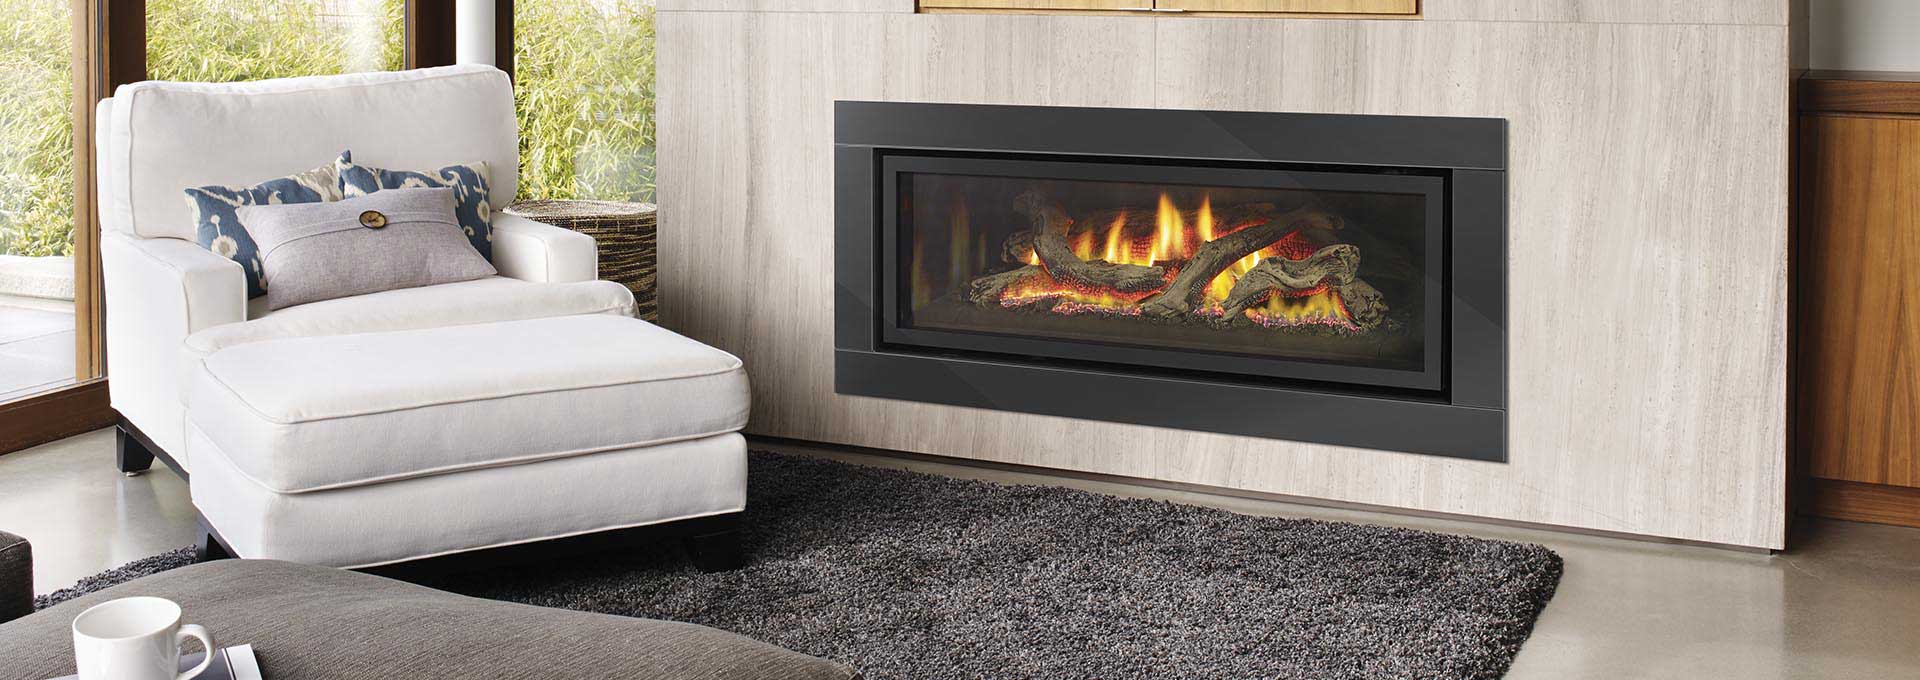 greenfire gf1500l gas log fire gas fireplaces regency fireplace rh regency fire com au